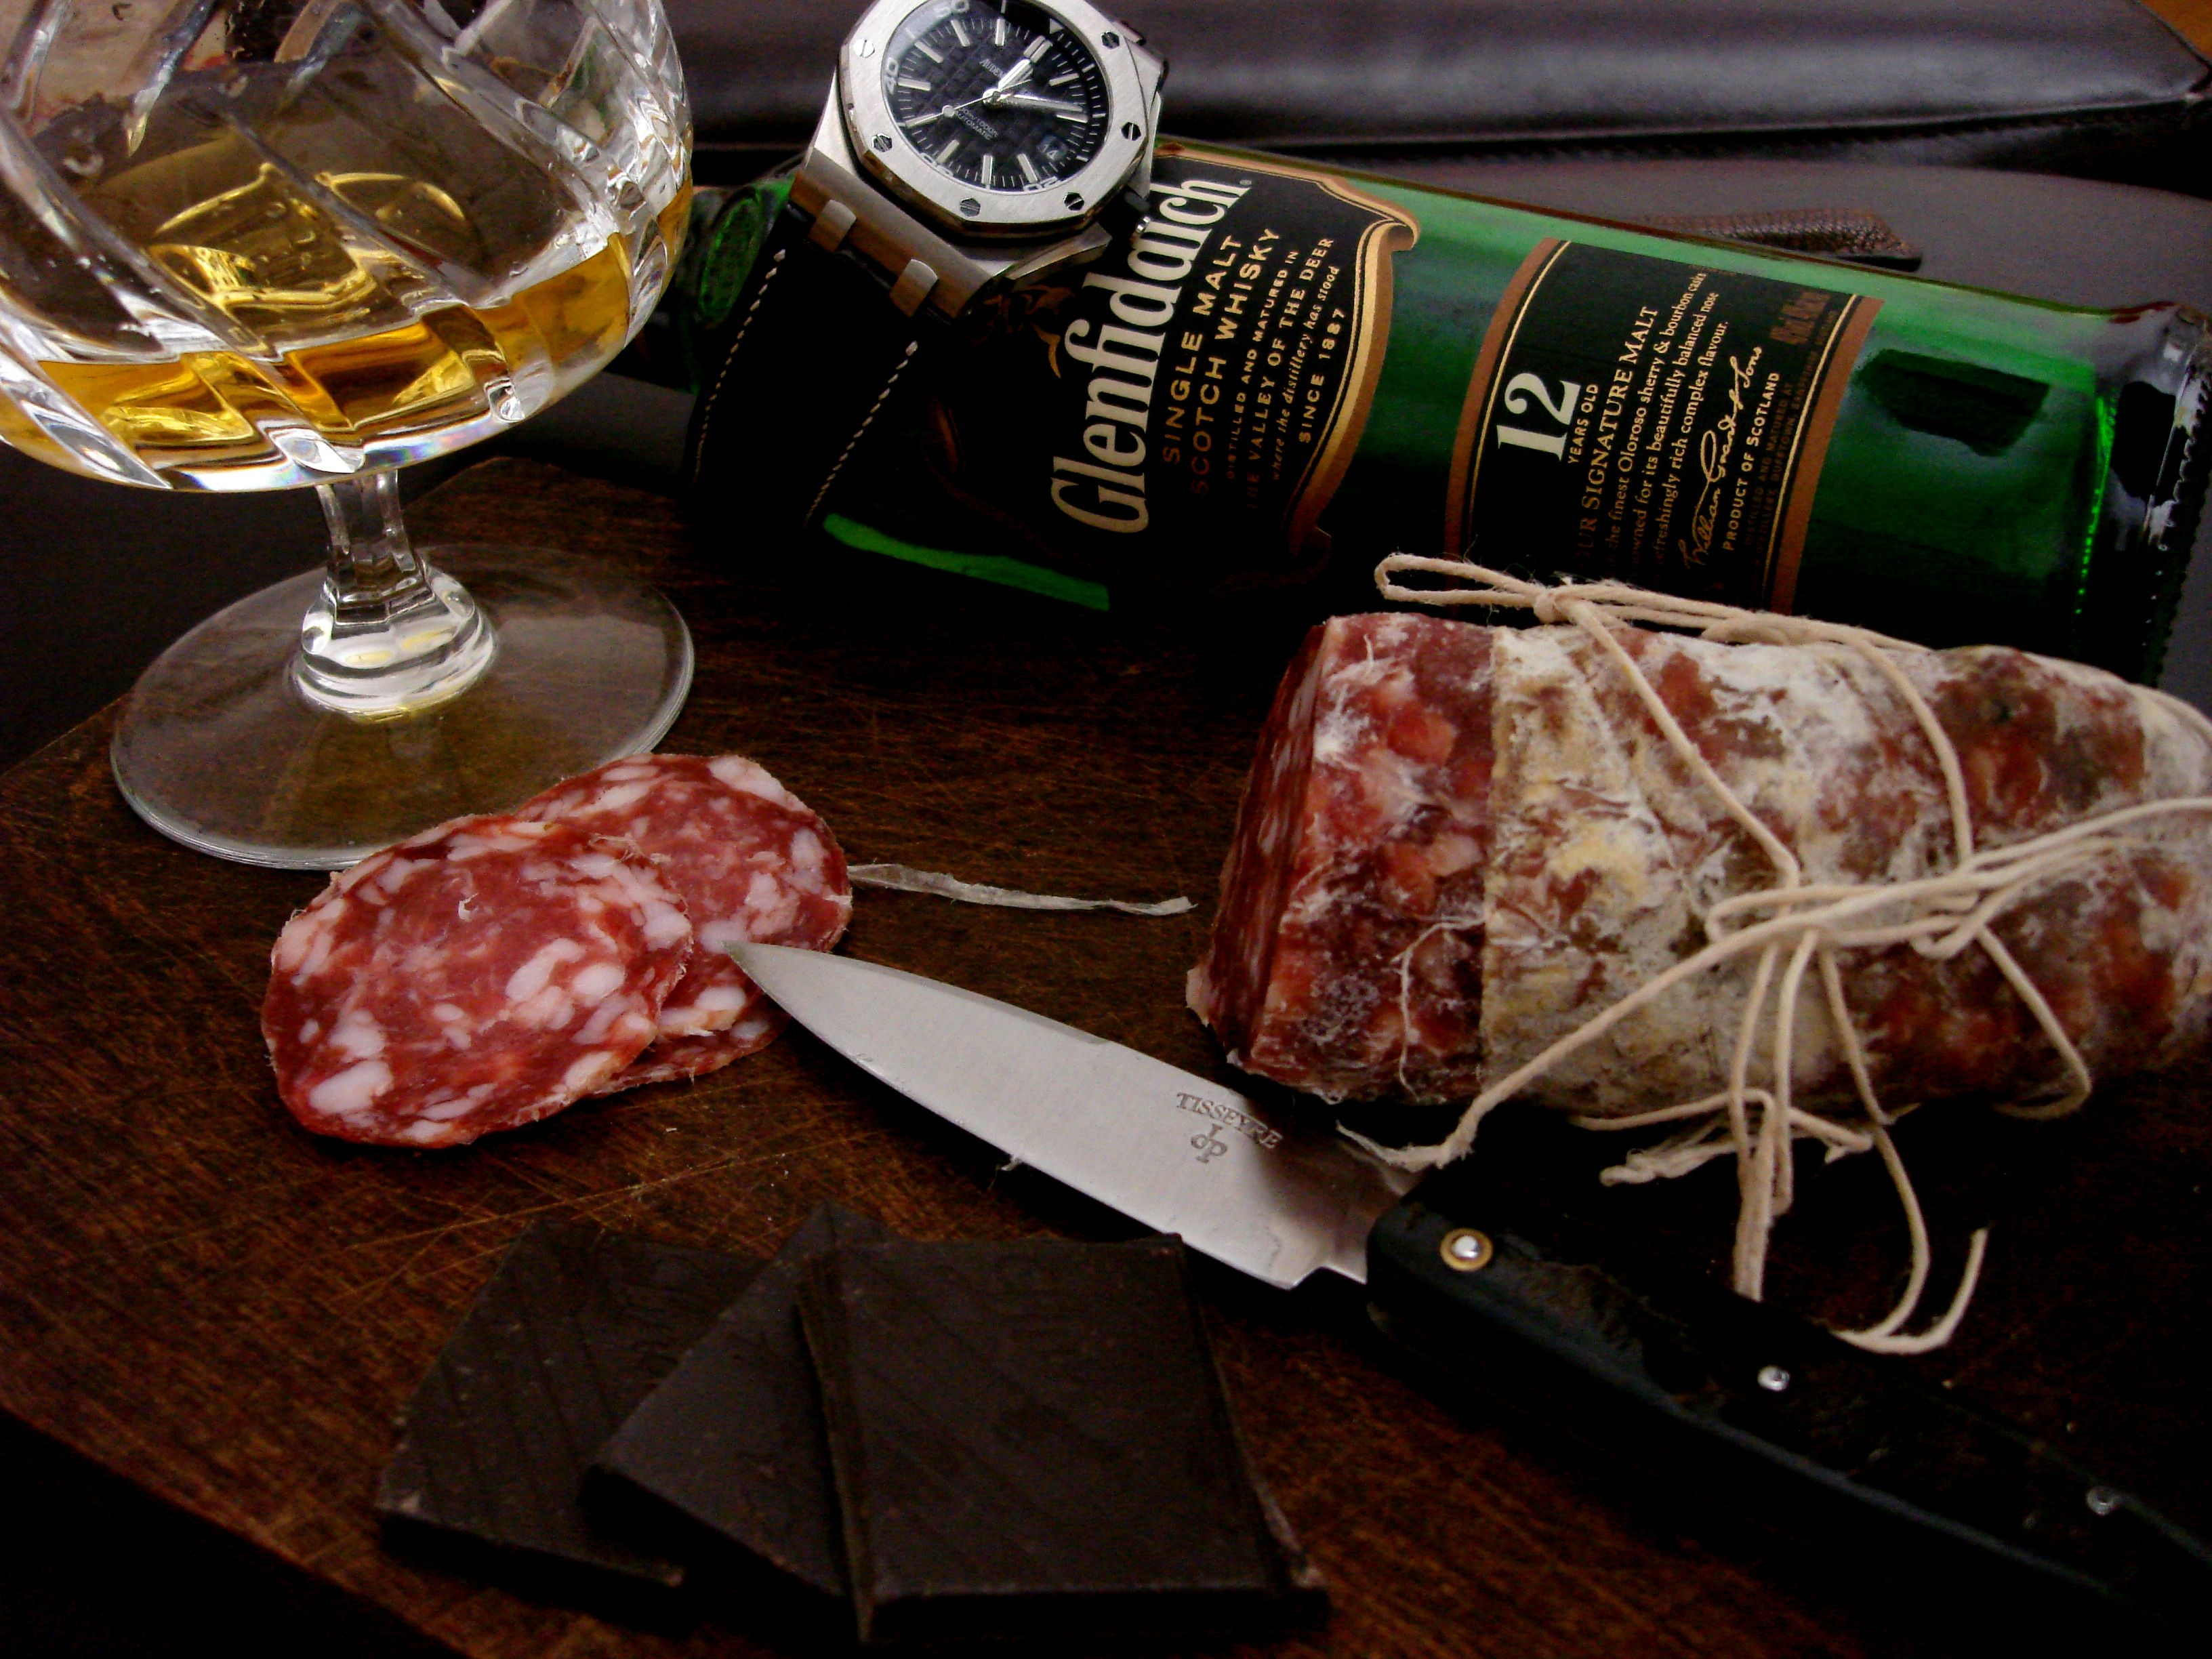 Late night snack - I love how international the world has become - Salami from Italy, Chocolate from Germany, Whisky from Scotland, Knife from France, Watch from Switzerland all on mesquite wood cutting board from the good old USA.